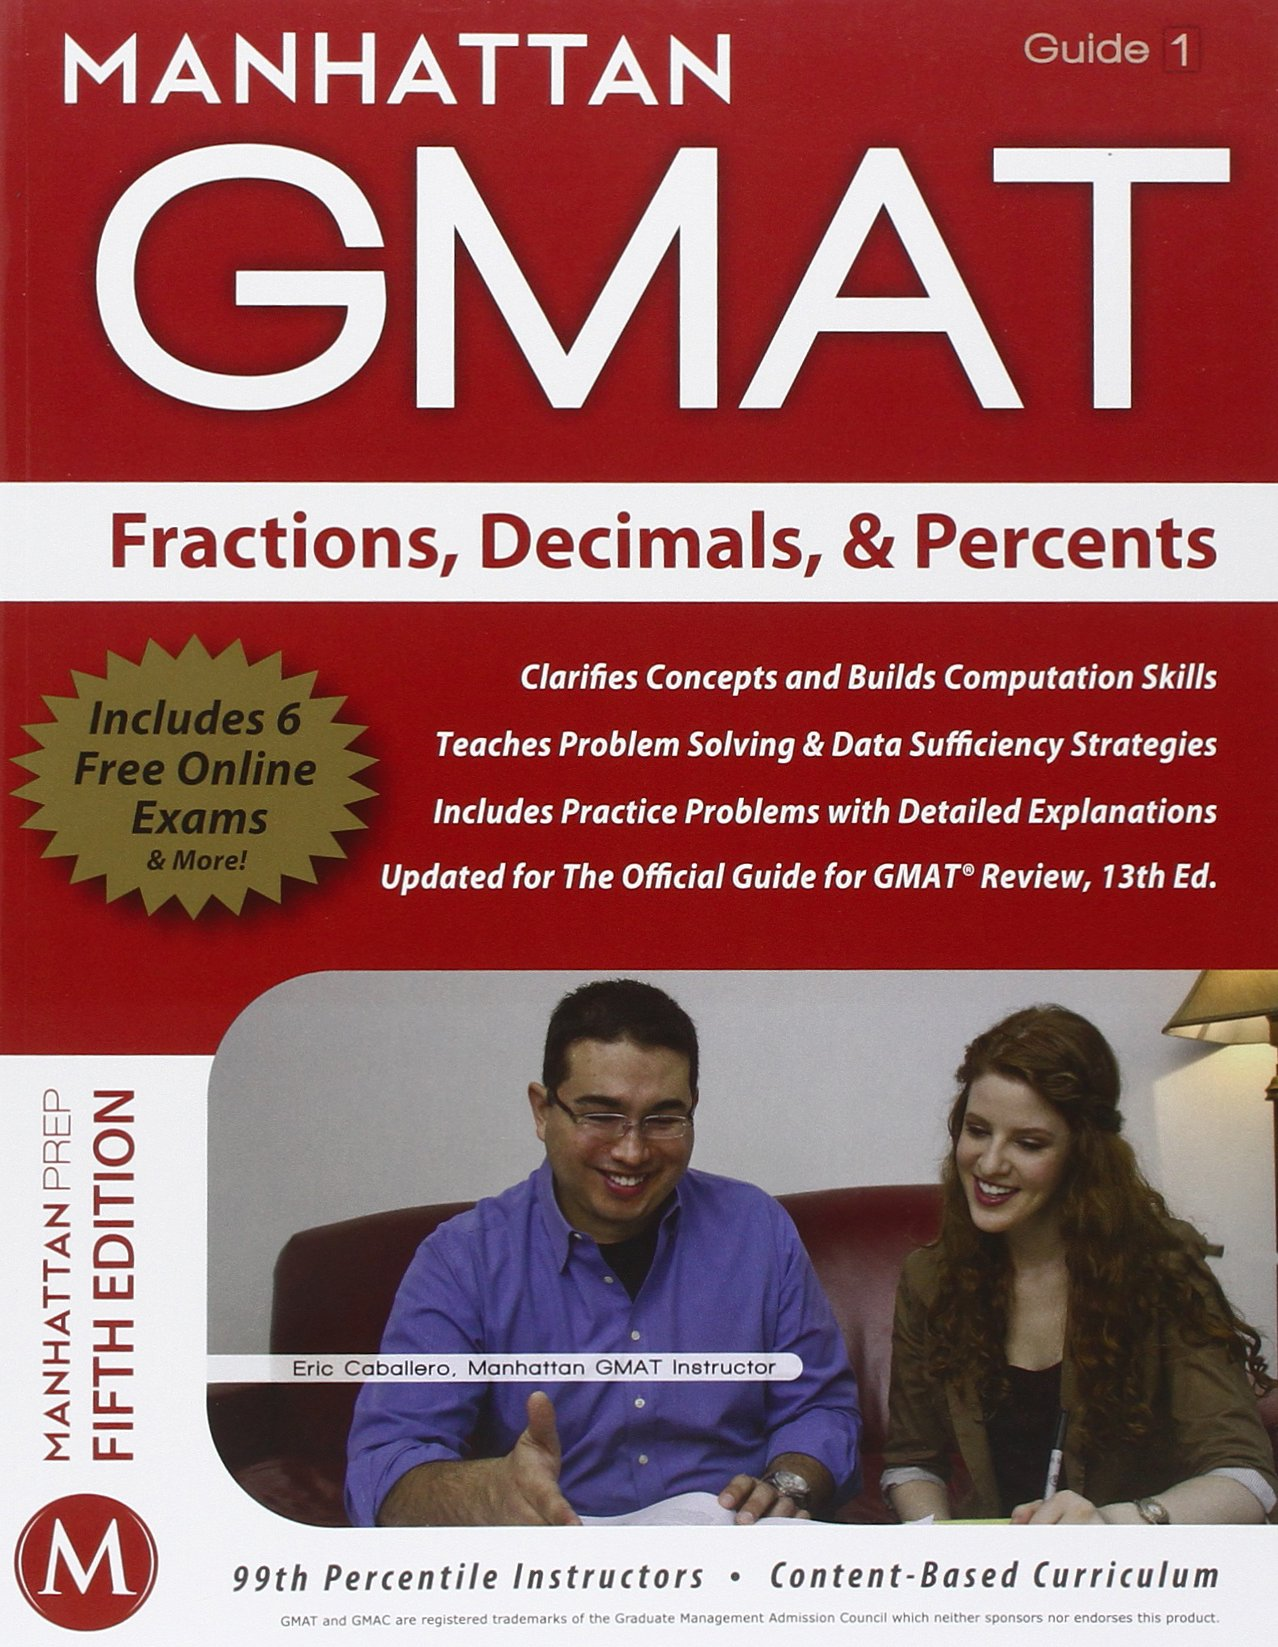 Manhattan gmat fractions decimals percents strategy guide